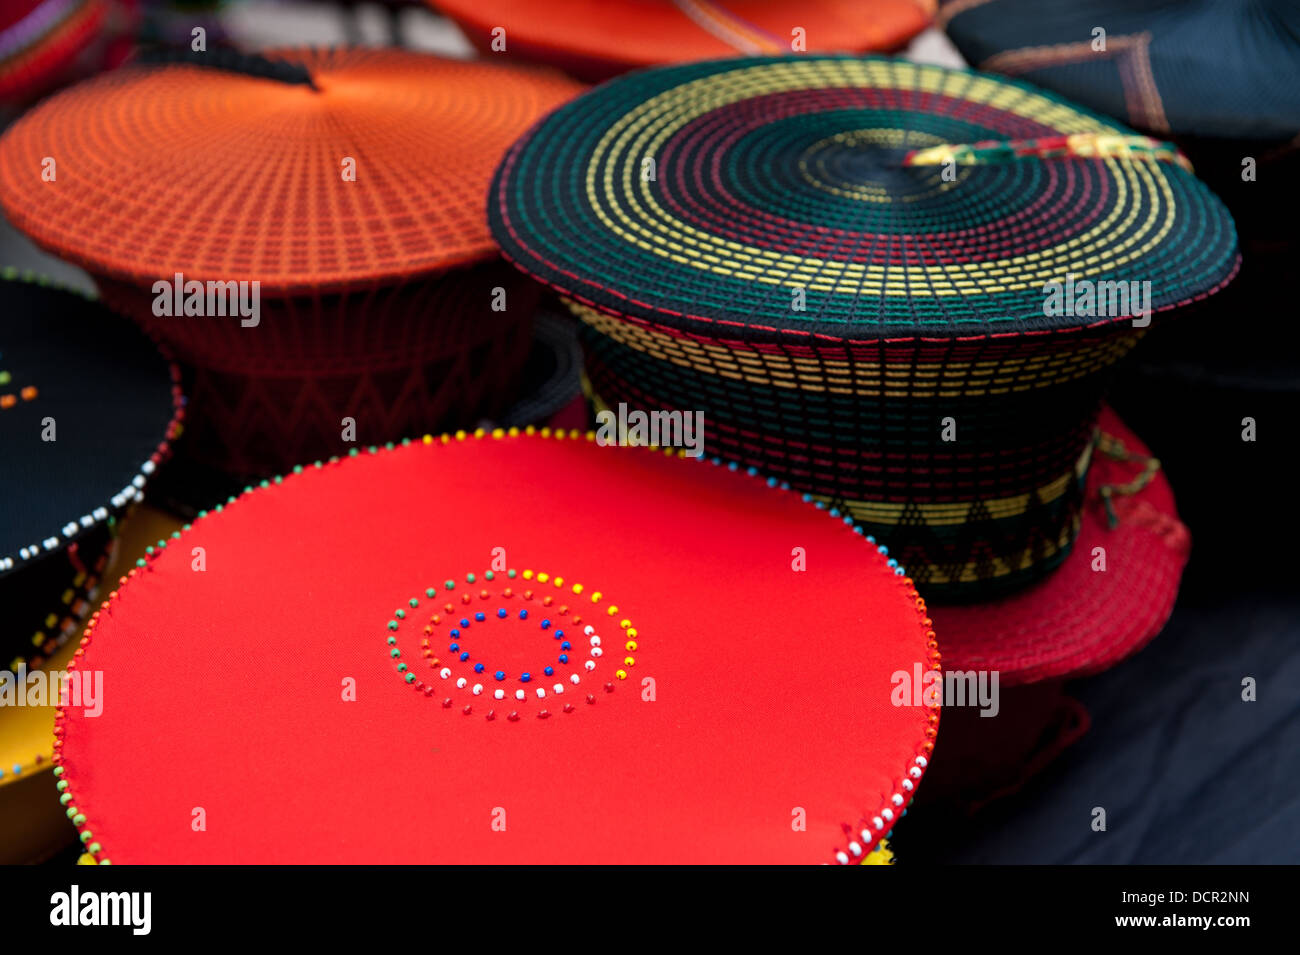 Zulu hats for sale at the market 6d0f27a2b50e